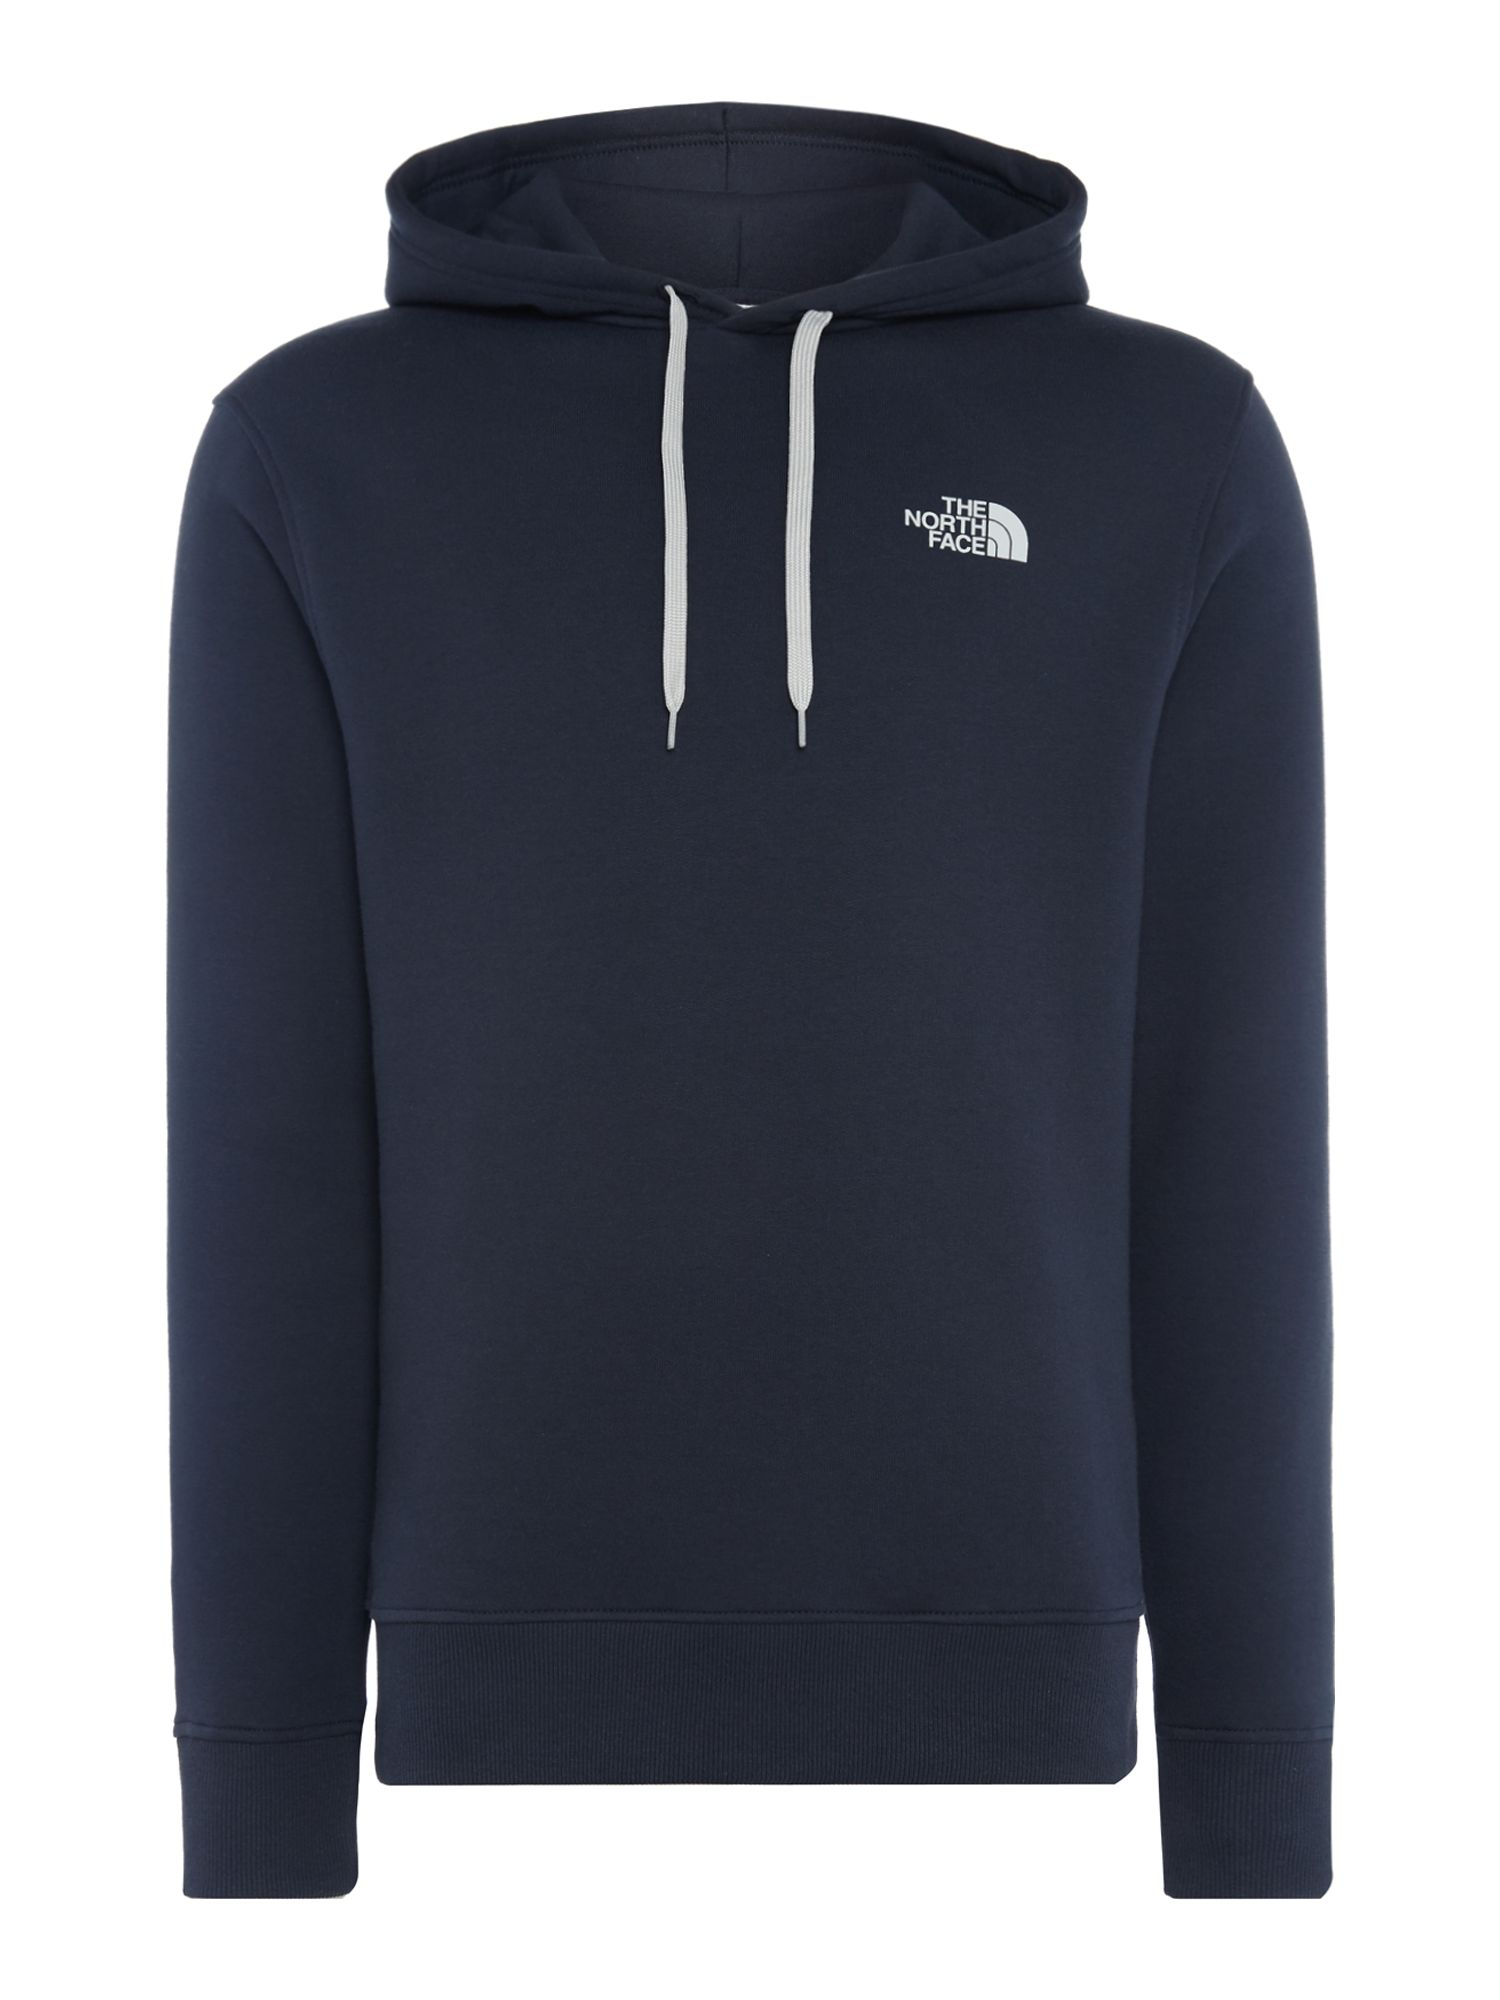 Men's The North Face Drew Peak Logo Pullover, Blue